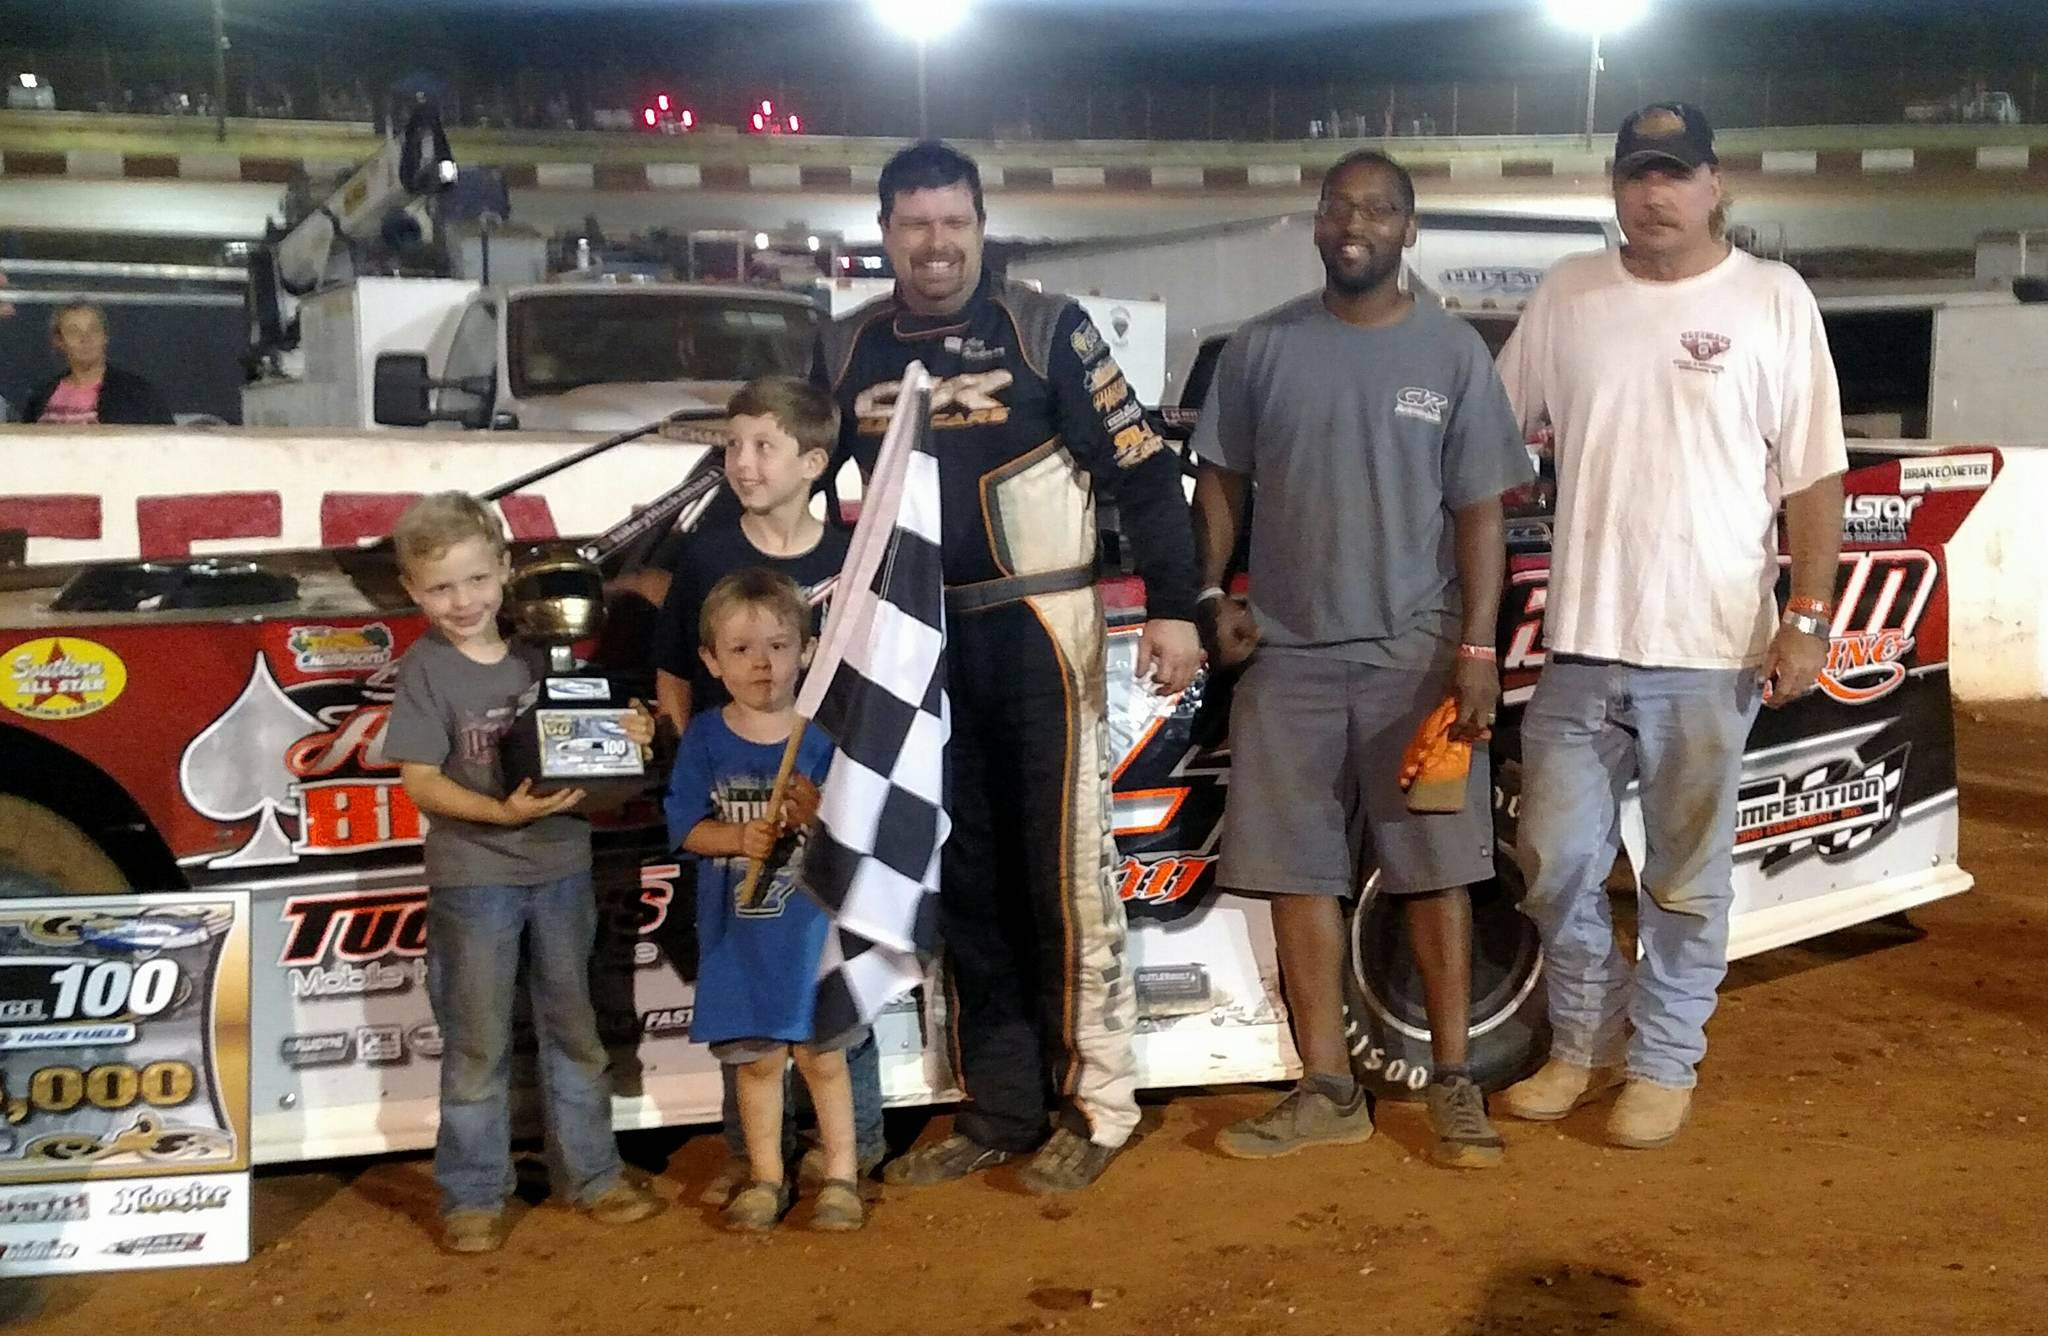 HICKMAN HUSTLES TO VICTORY IN CHEVROLET PERFORMANCE 100